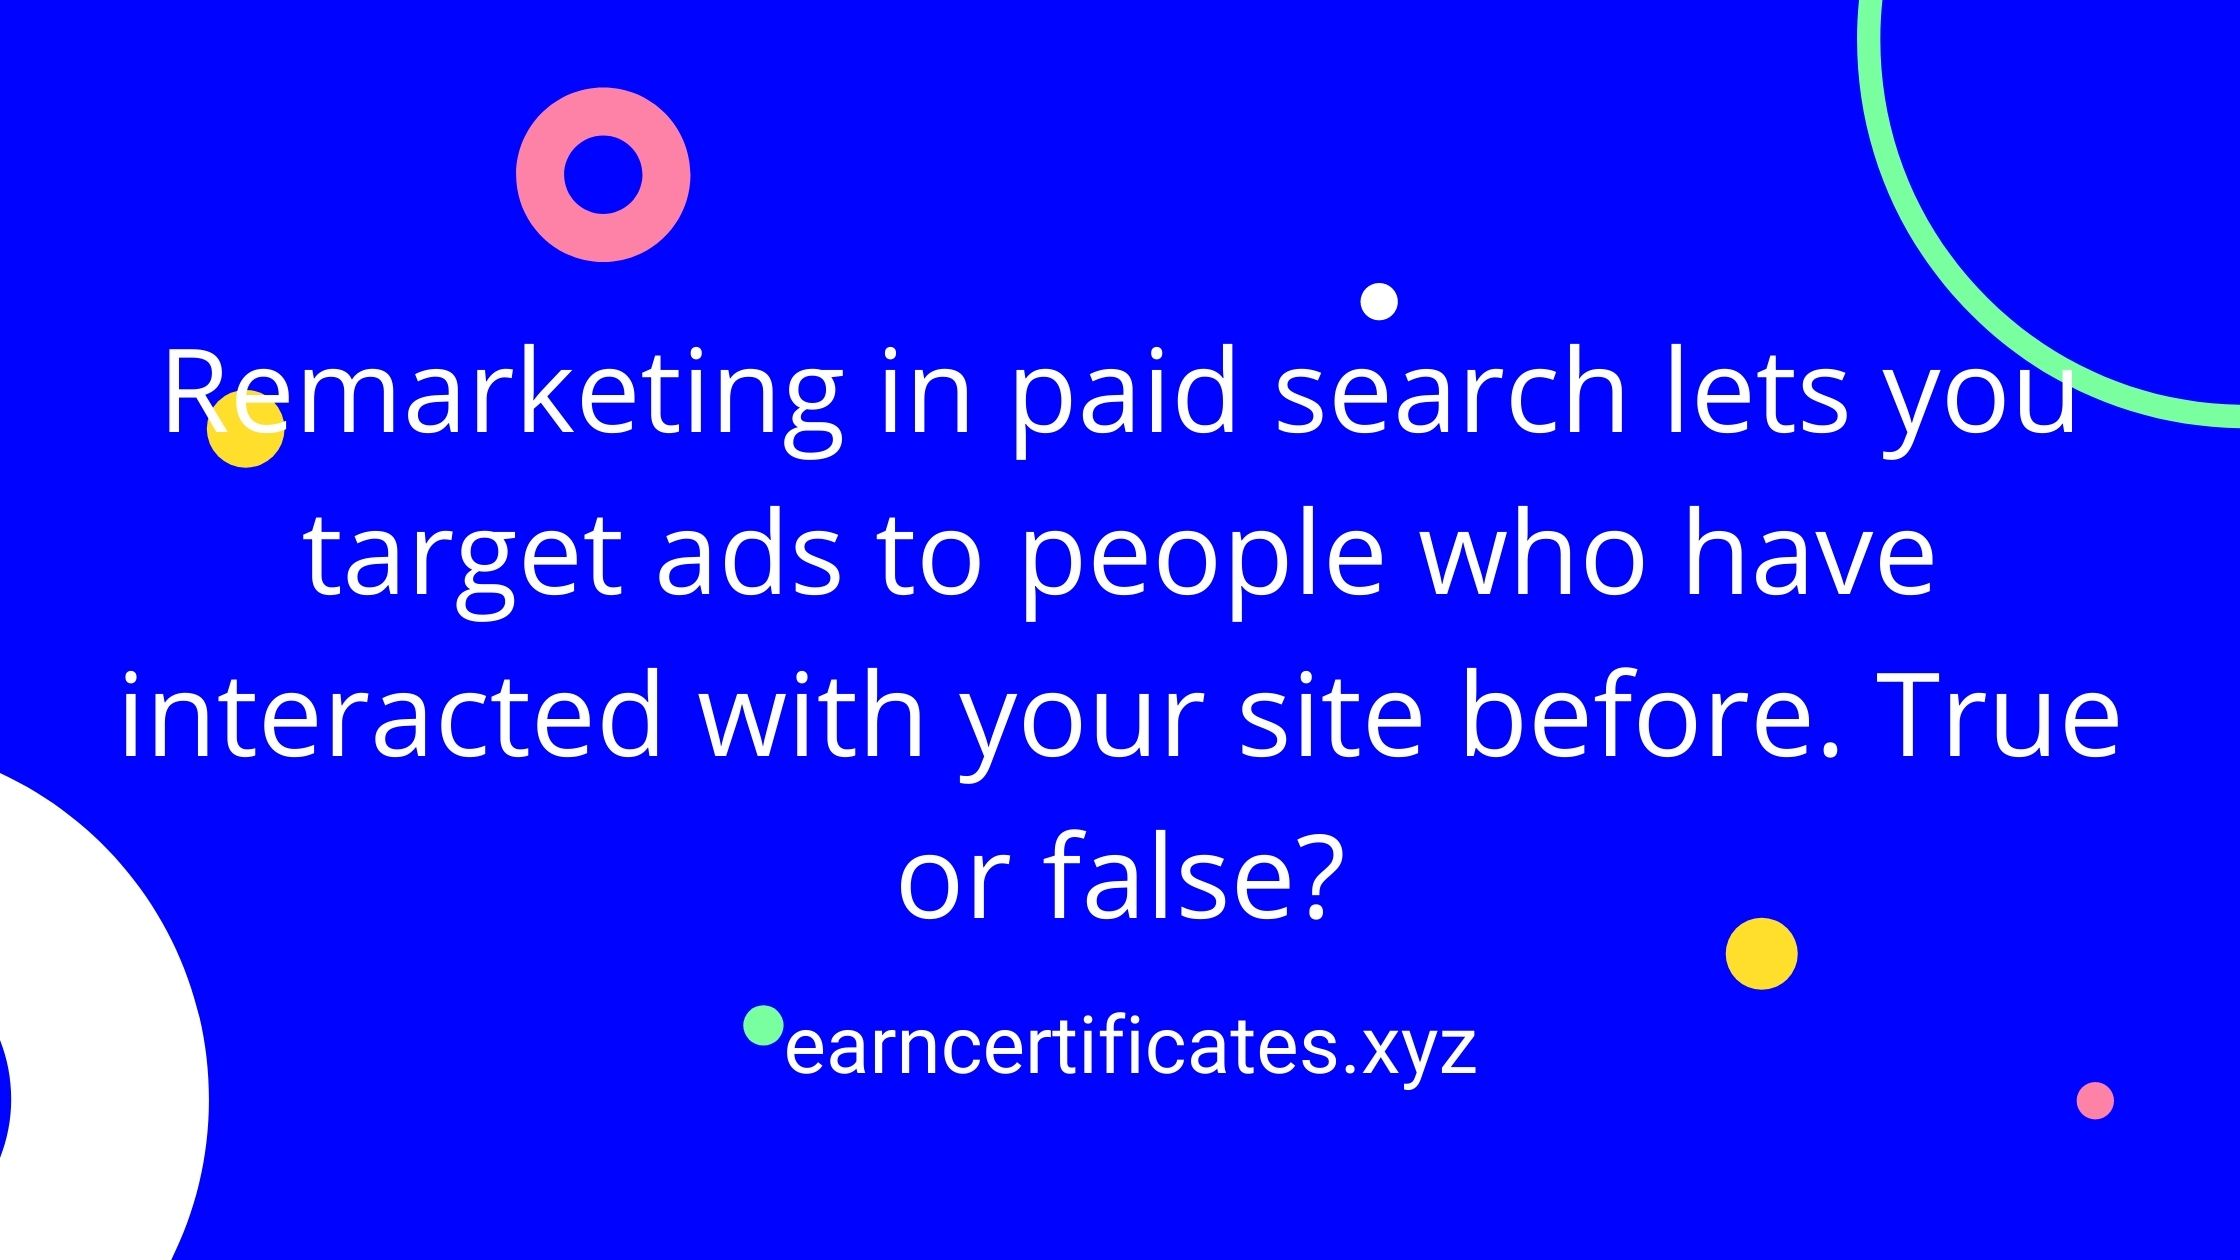 Remarketing in paid search lets you target ads to people who have interacted with your site before. True or false?